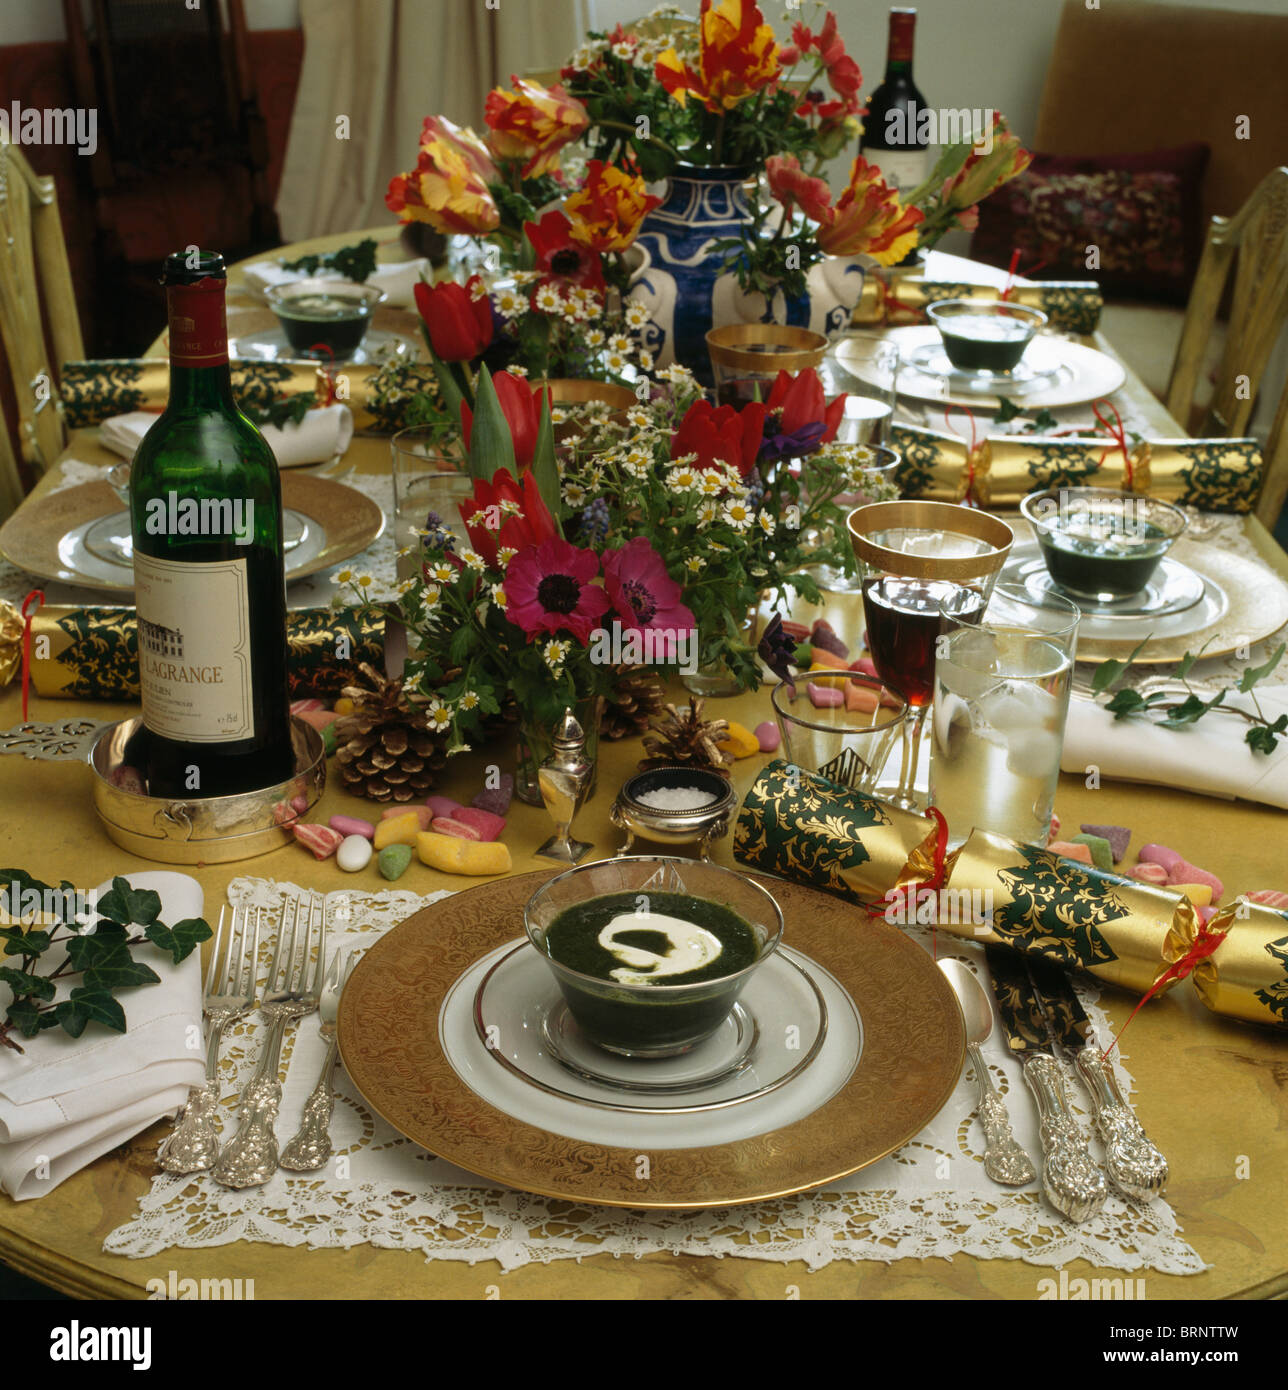 Christmas Lunch Table Decoration Ideas : Close up of place settings and floral decorations on table